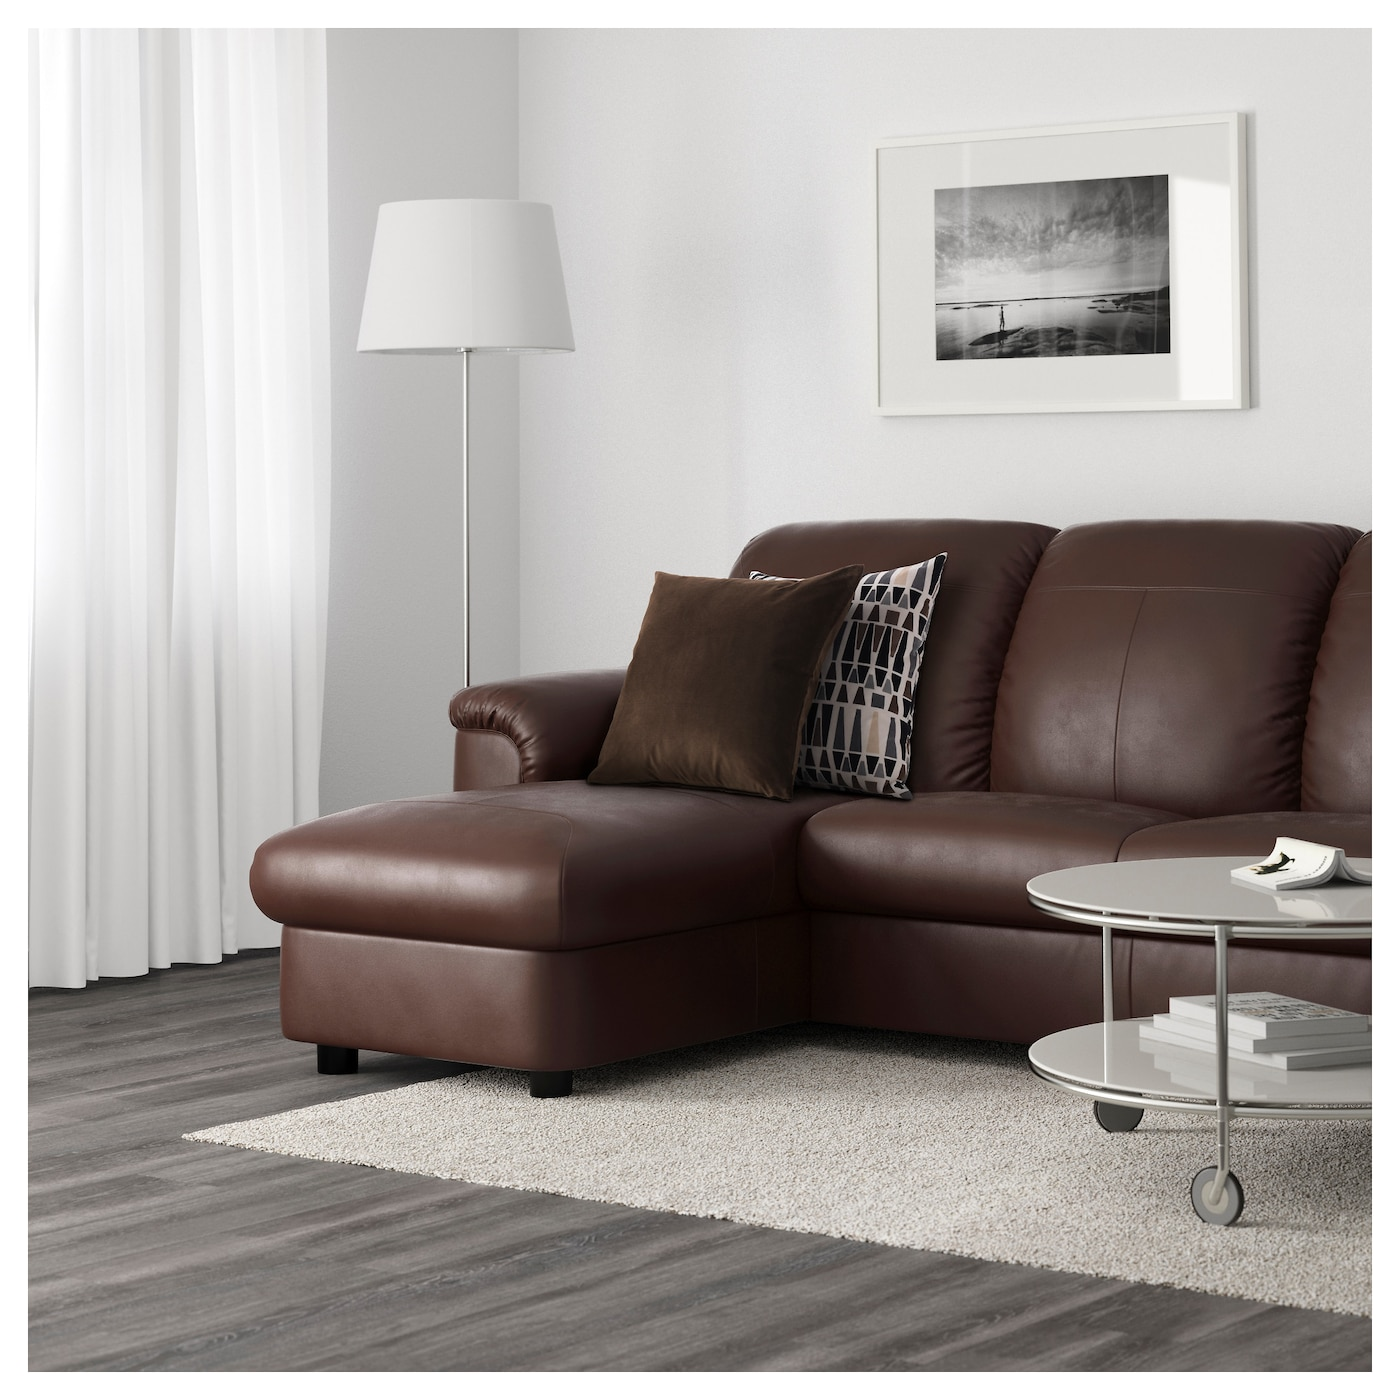 Timsfors two seat sofa with chaise longue mjuk kimstad for Brown leather chaise end sofa